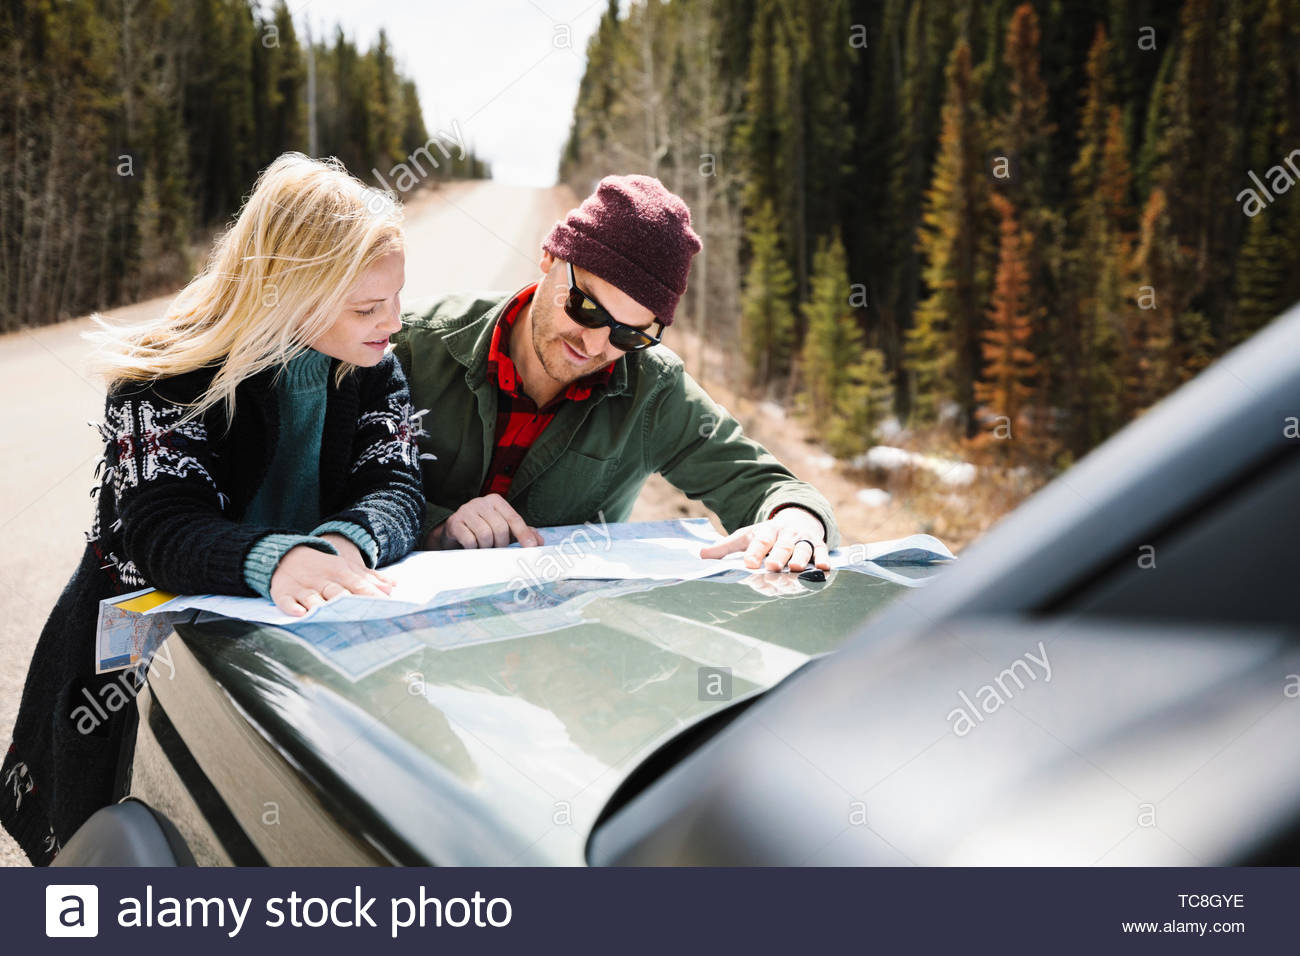 Couple looking at map on hood of car at sunny roadside Stock Photo